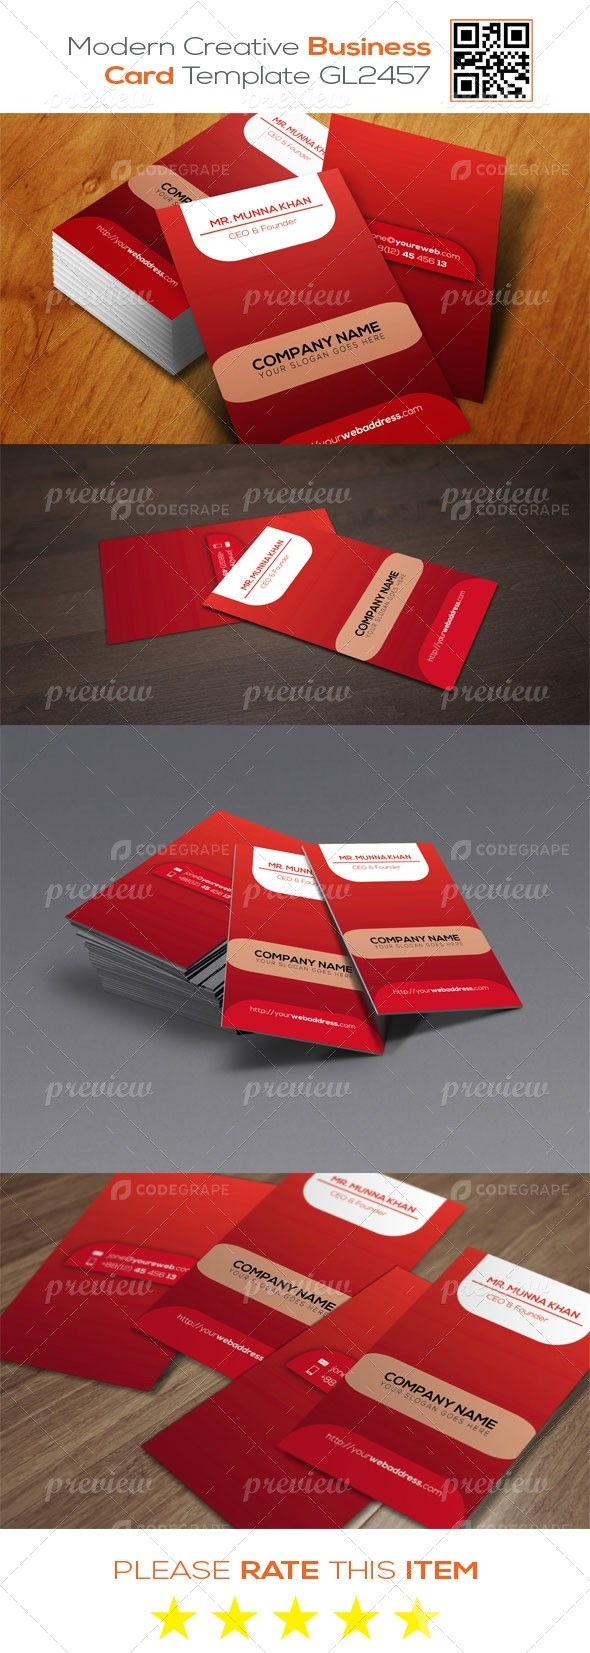 Modern  Creative Business Card Template GL2457